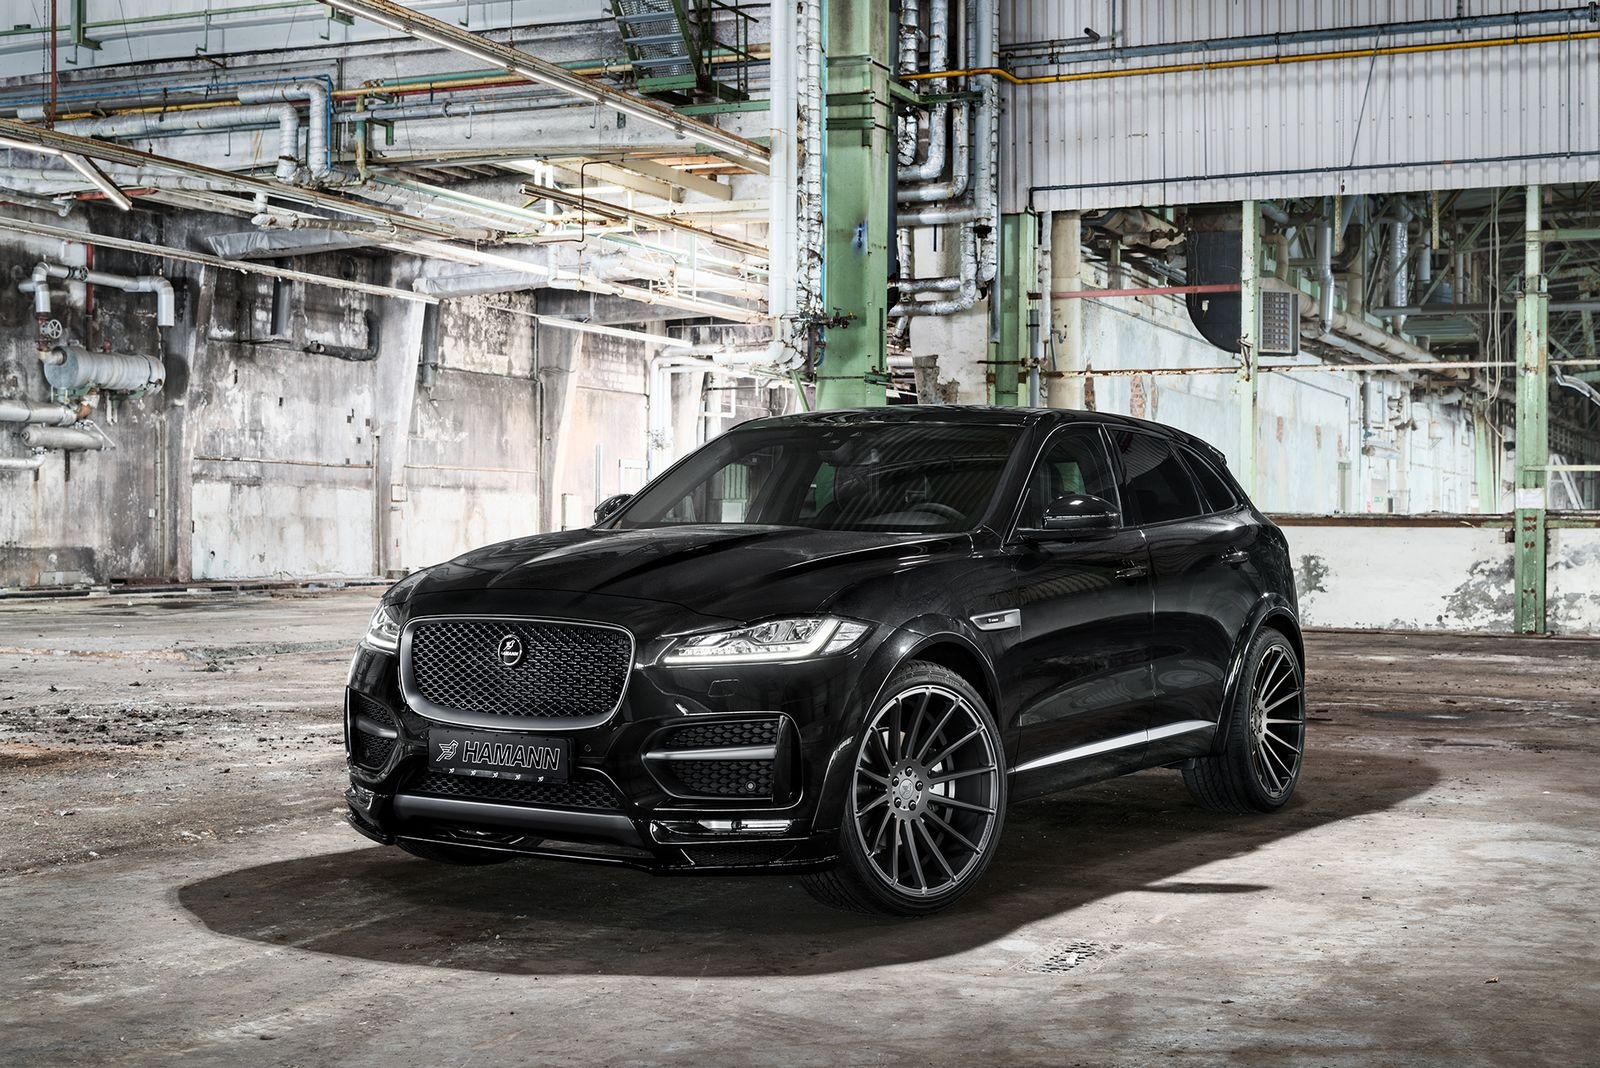 All Black Sinister Jaguar F Pace Gets Custom Parts Carid Com Gallery